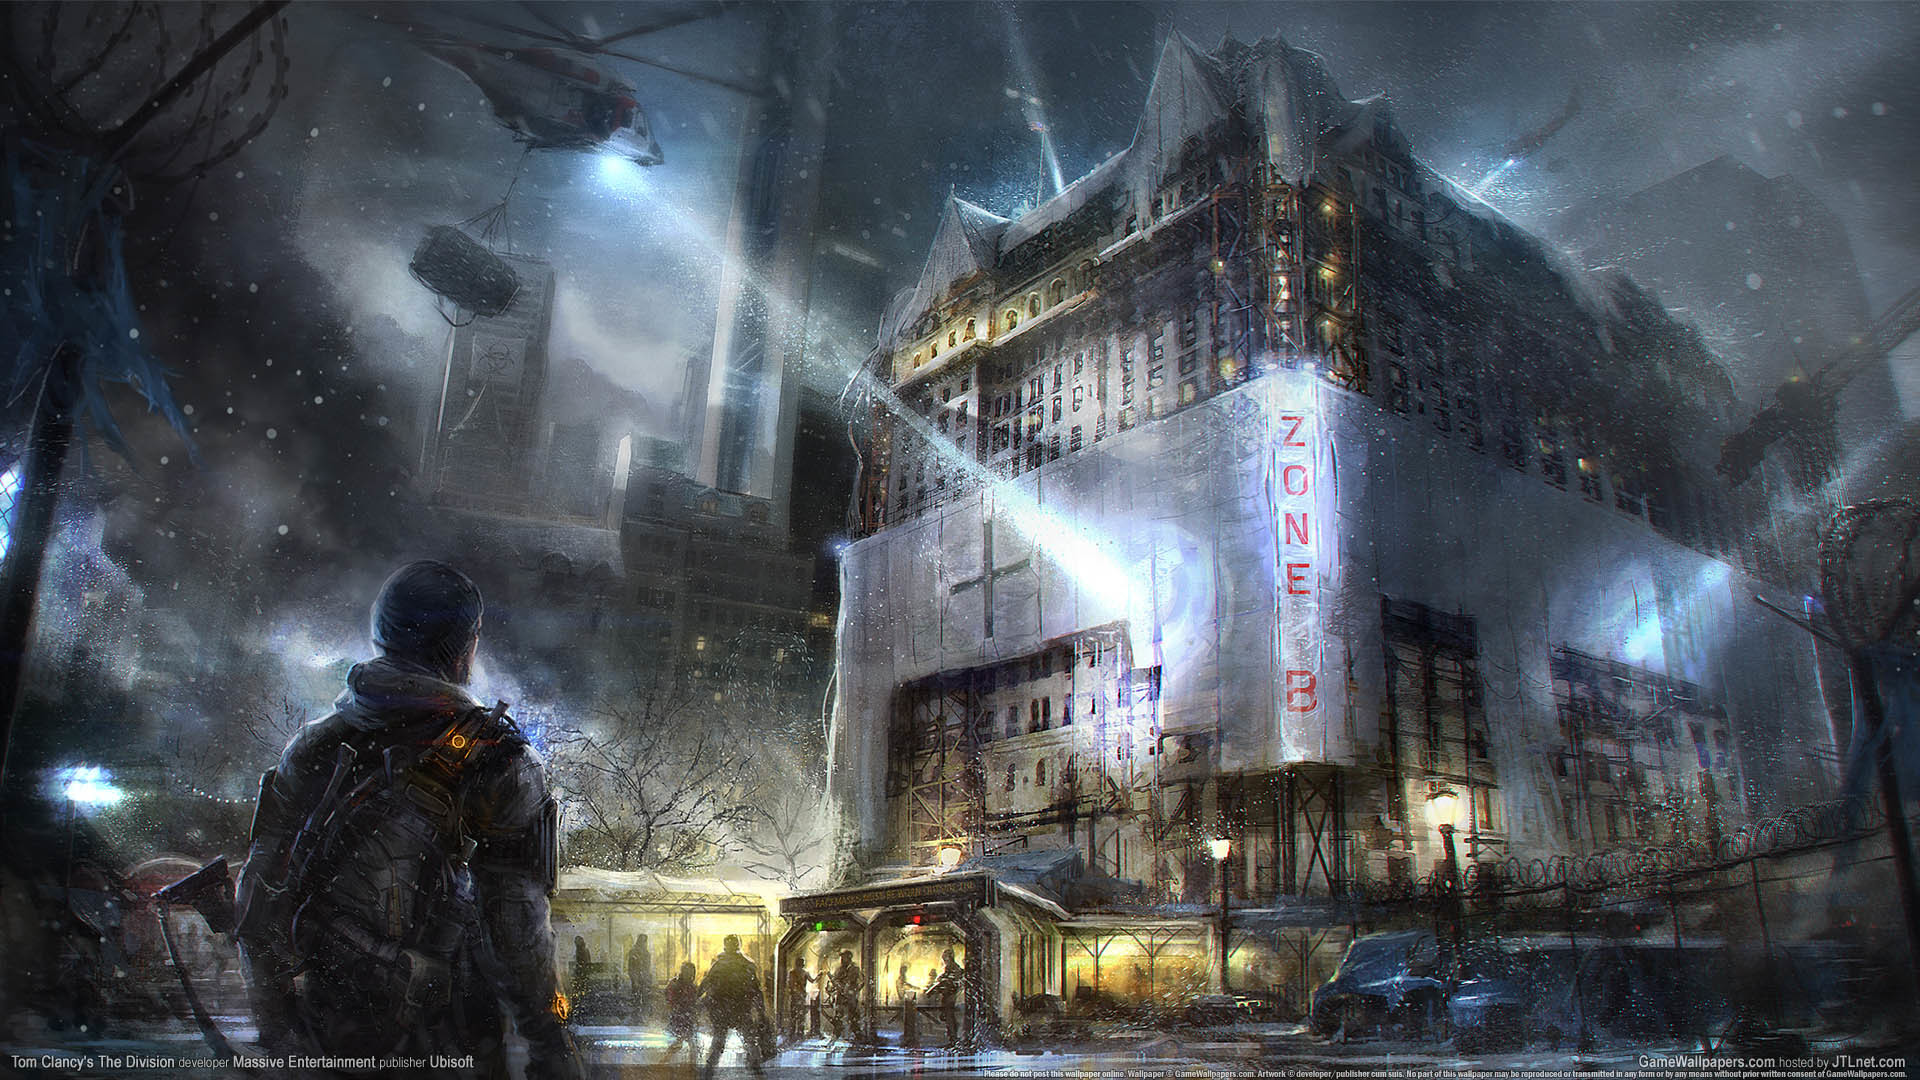 Tom Clancy's The Division wallpaper 01 1920×1080